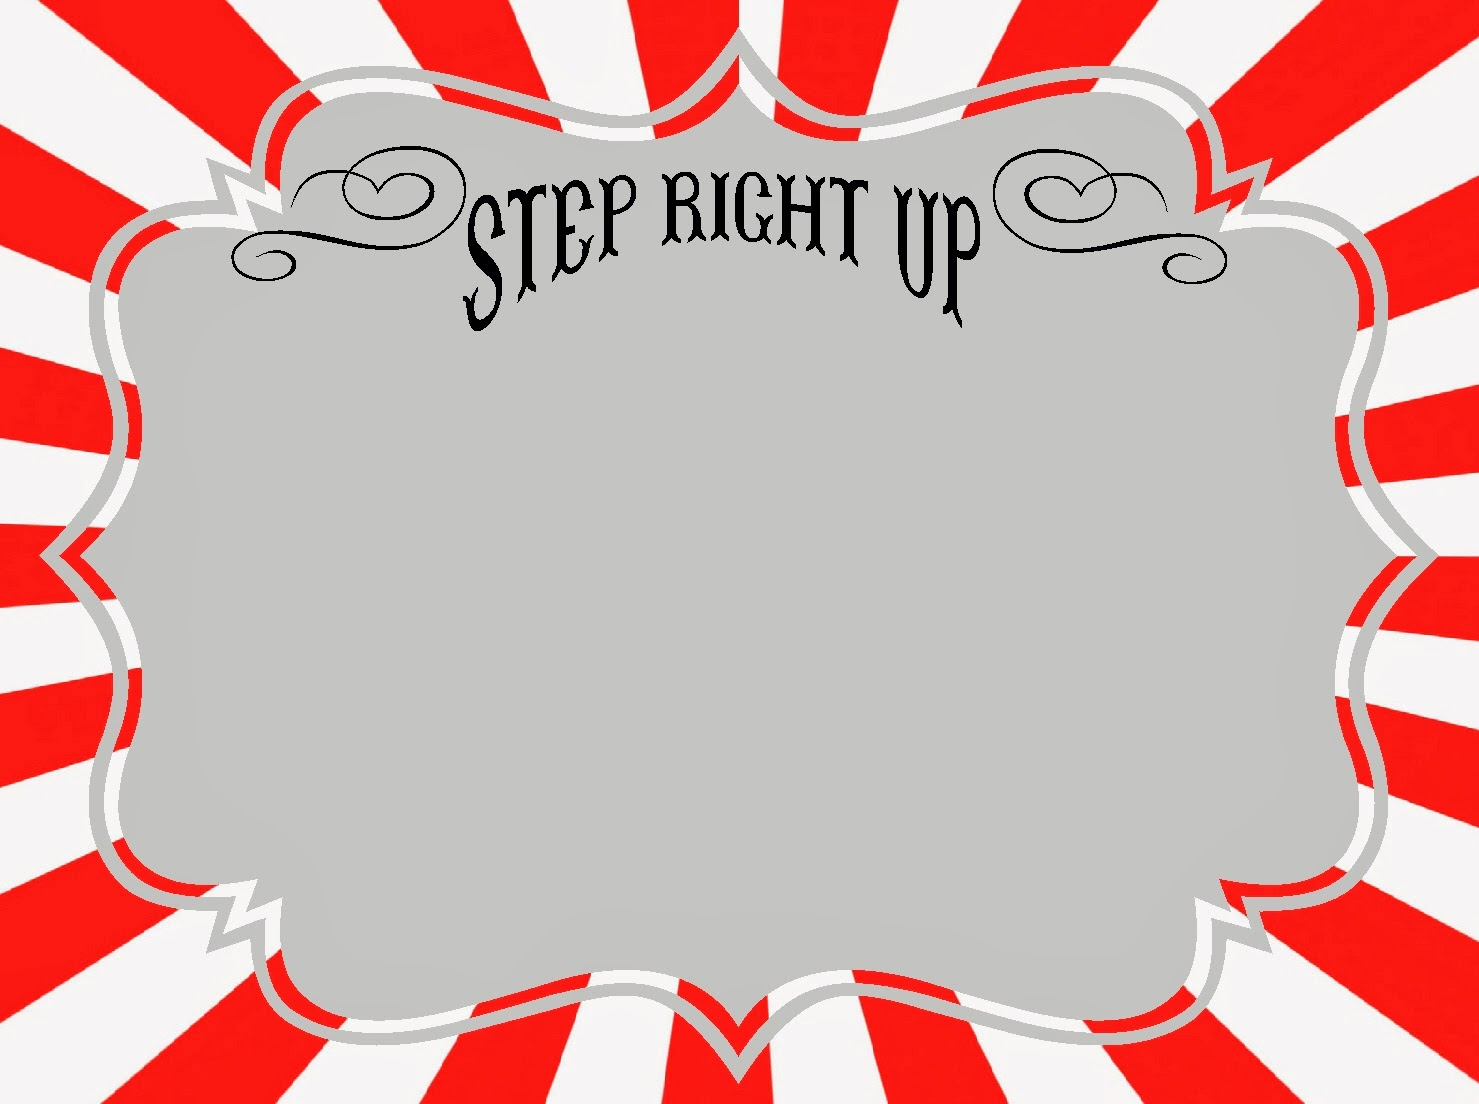 Free carnival signs printables roommomspot for Sign templates free downloads